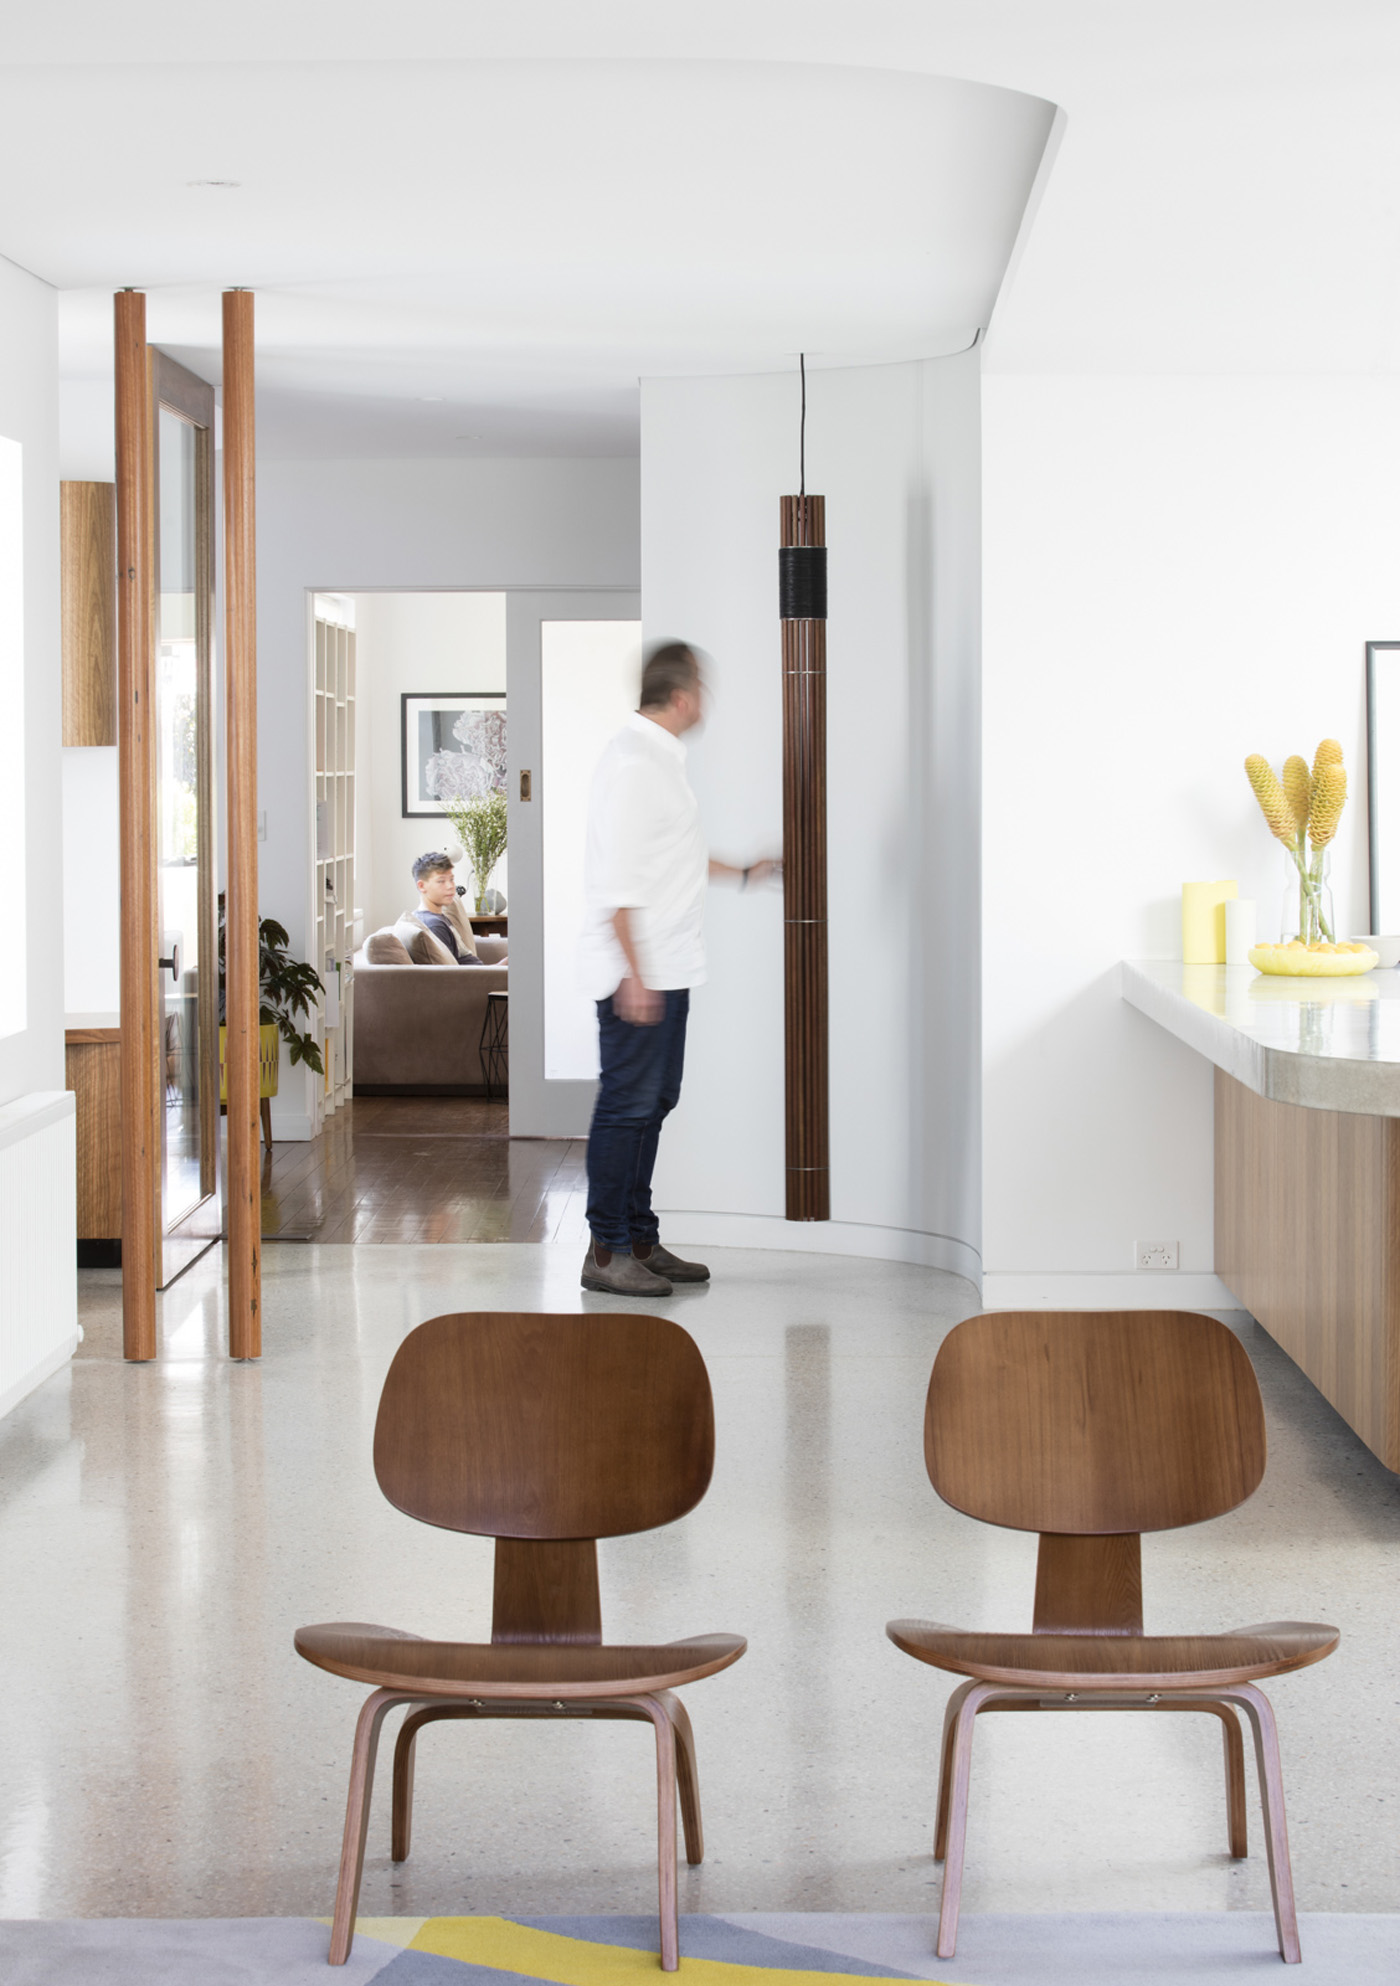 Dover Heights Pendants by award winning Sydney firm Sam Crawford Architects. Man interact with corner pendant